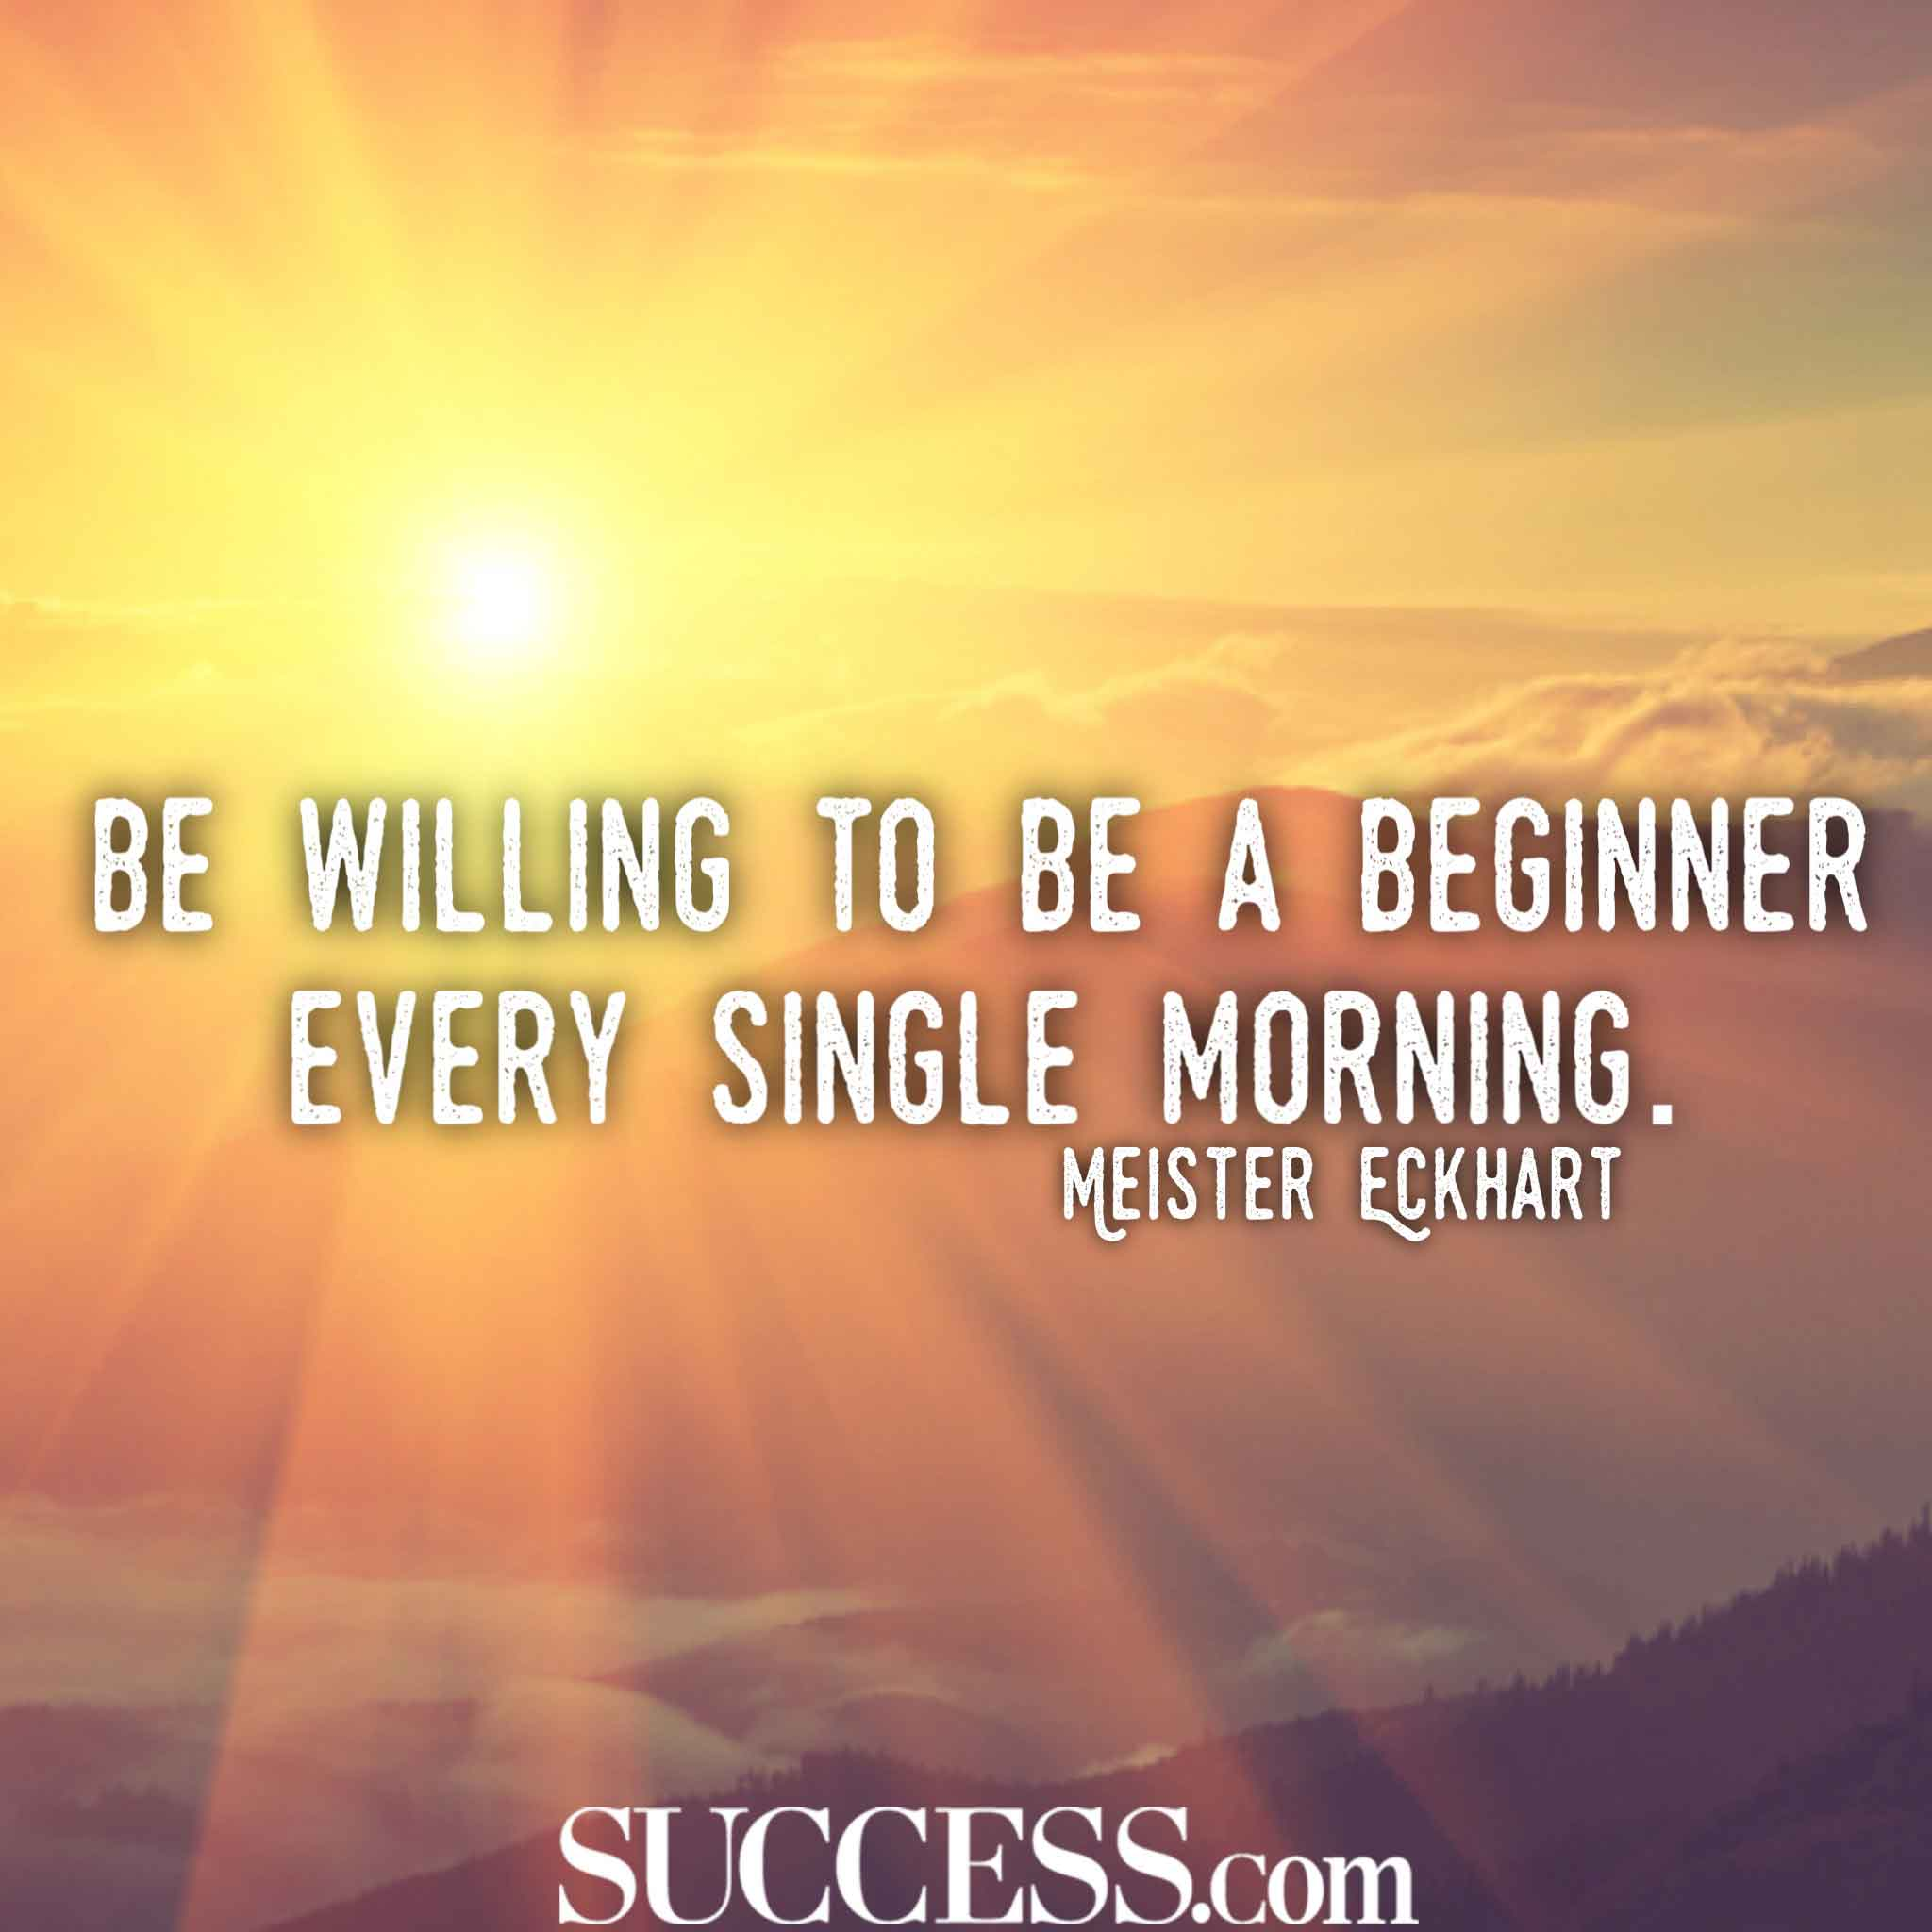 13 Uplifting Quotes About New Beginnings | SUCCESS